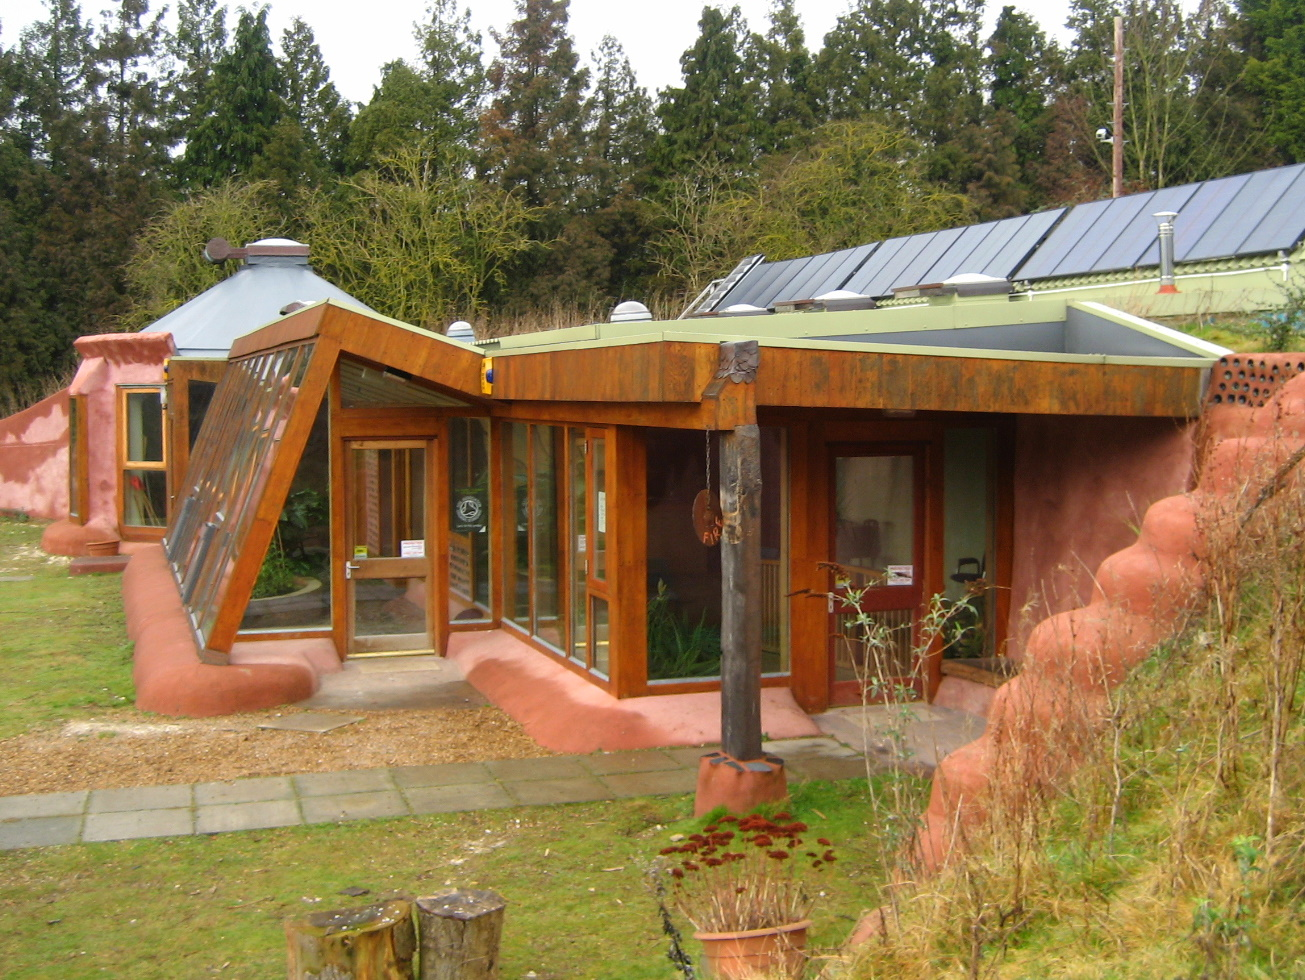 Earthship wikidwelling fandom powered by wikia for Building a one room house